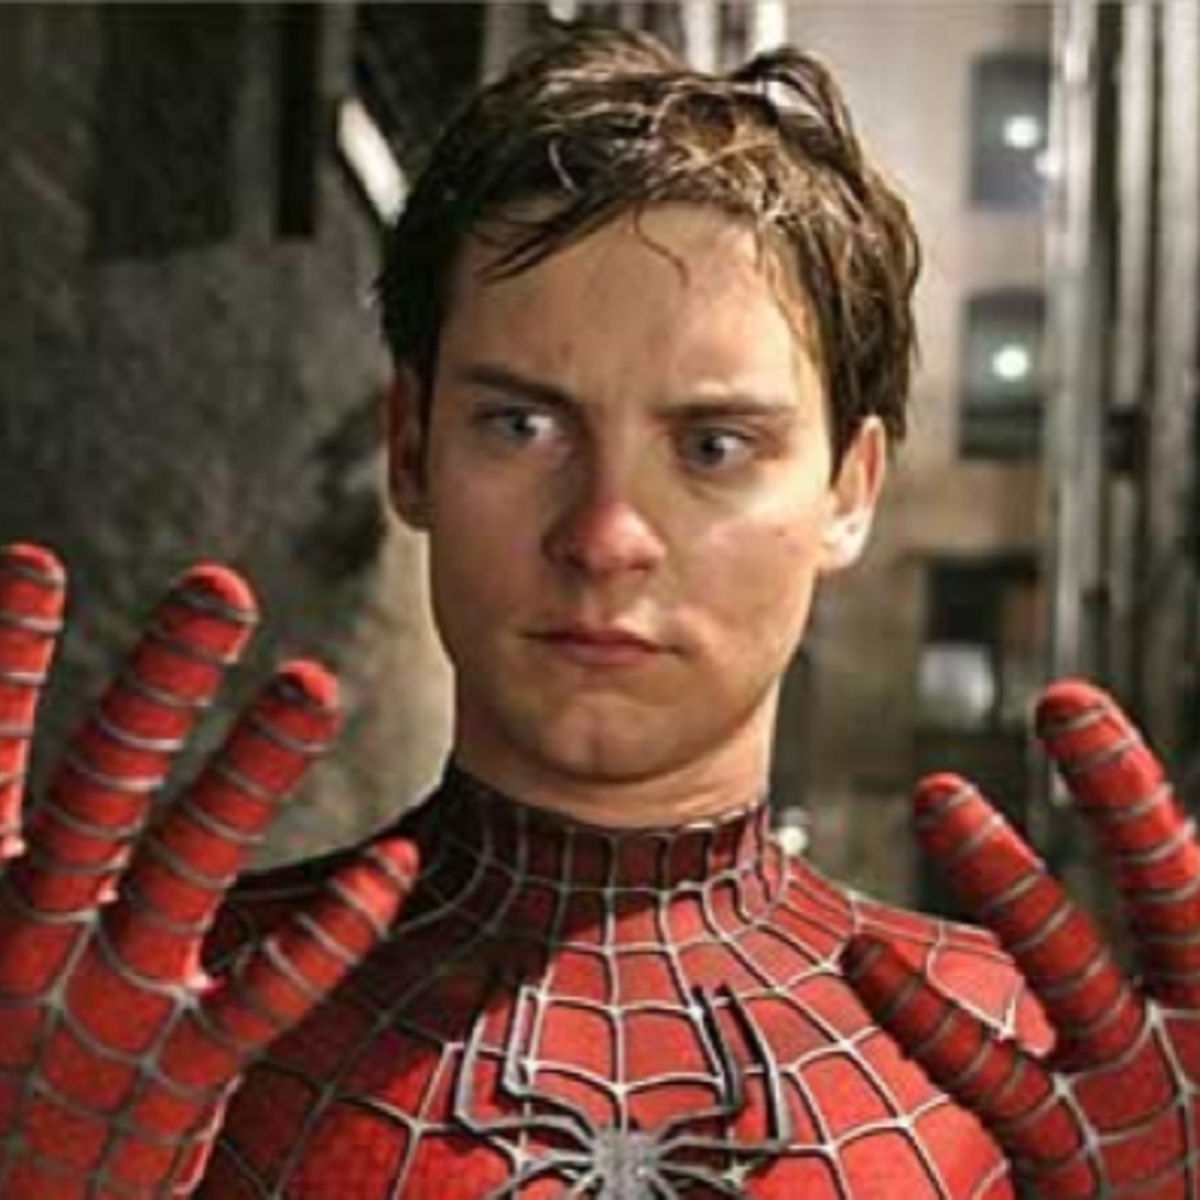 Tobey_Maguire_SpiderMan_1.jpg